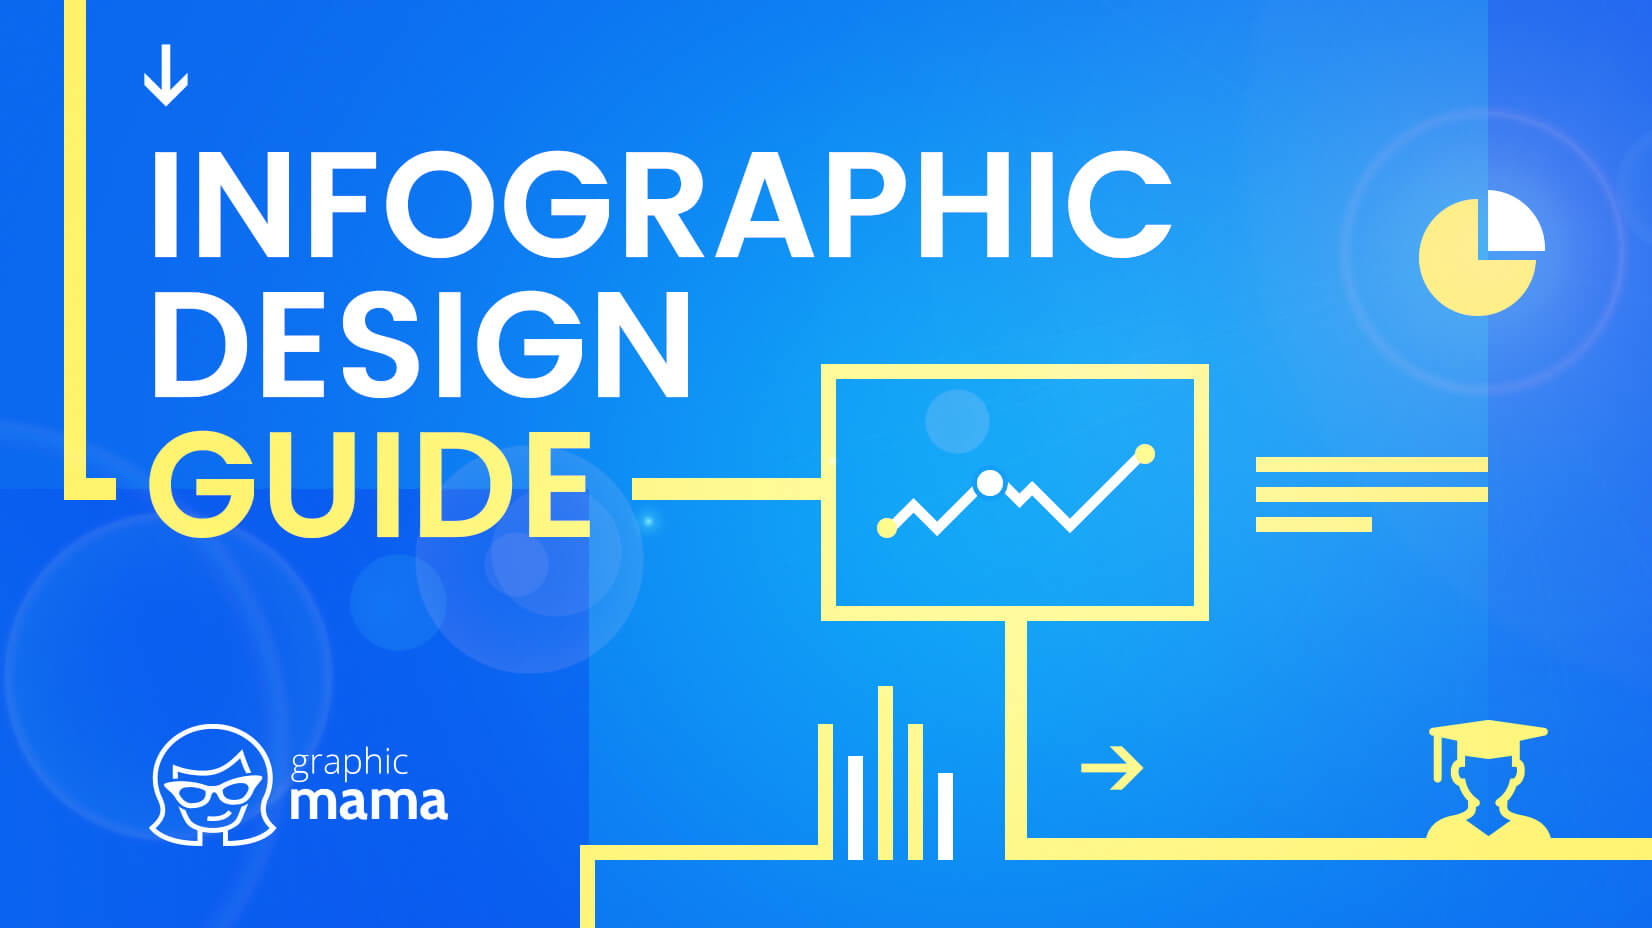 Infographic Design Guide: 10 Must-Follow Steps